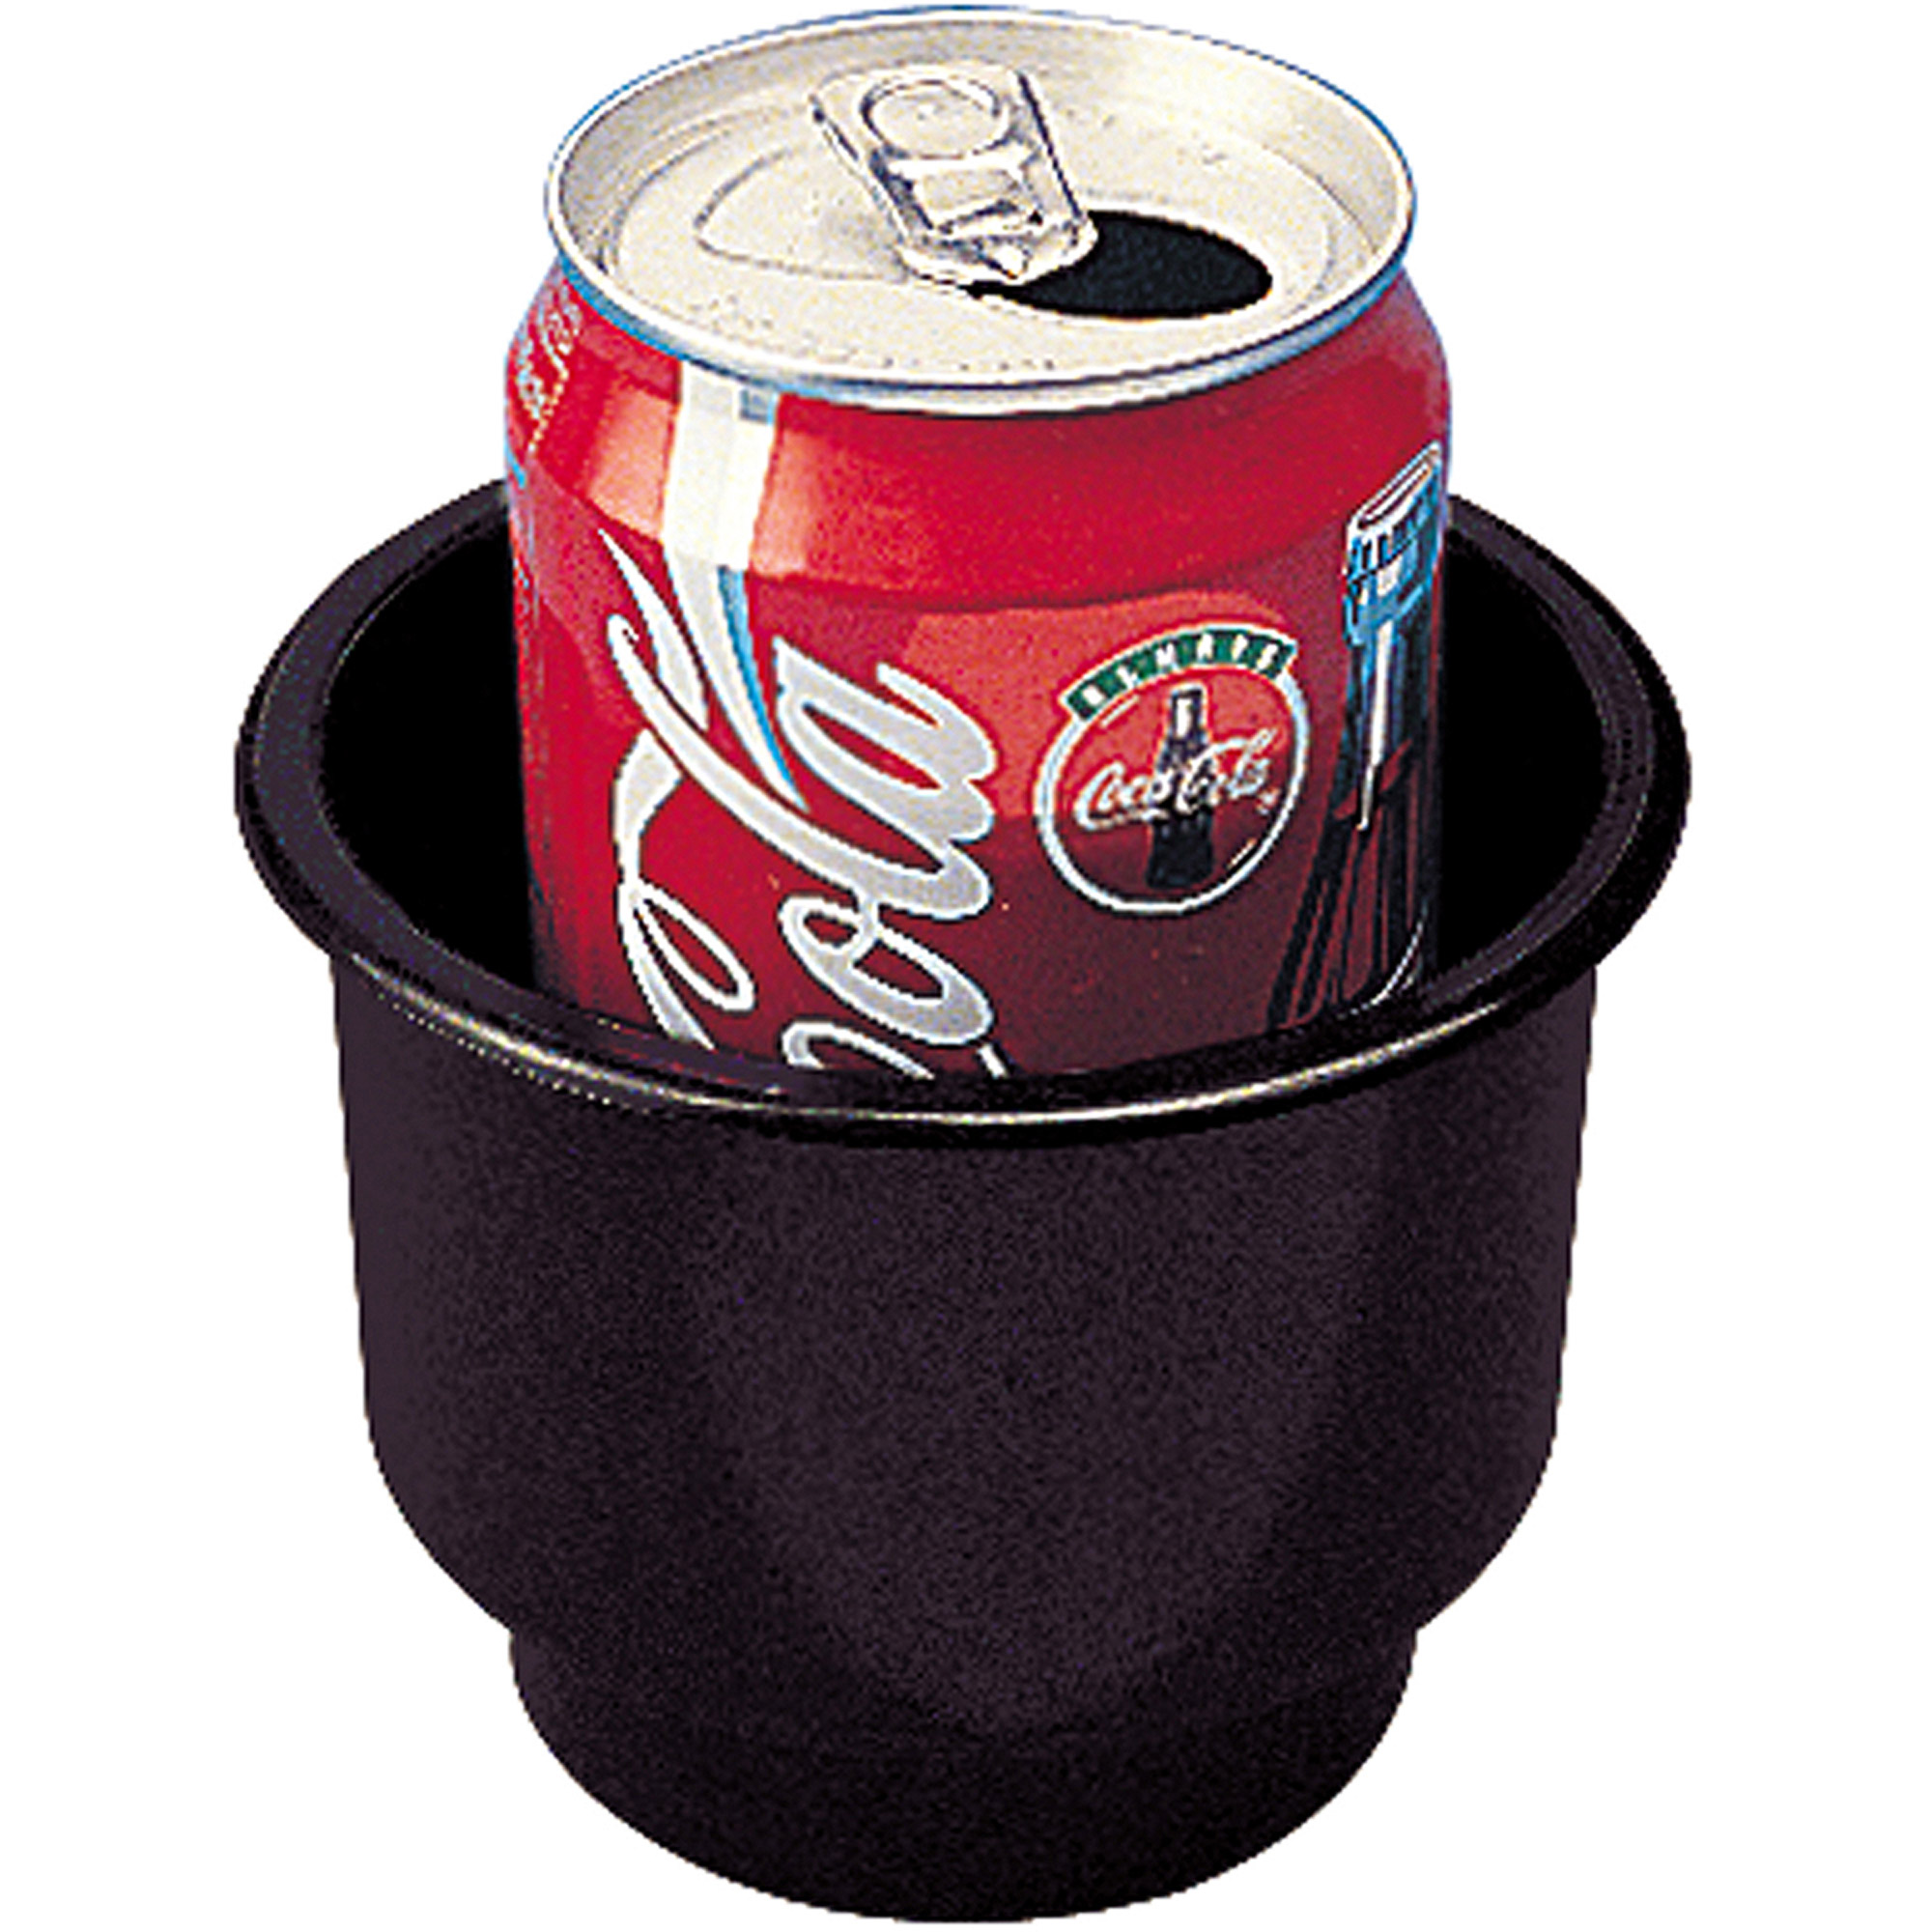 "Sea Dog Flush Mount Combo Drink Holder with Drain Holes, 3-1/4"" Deep, Black, 3-3/4"" Hole Required"